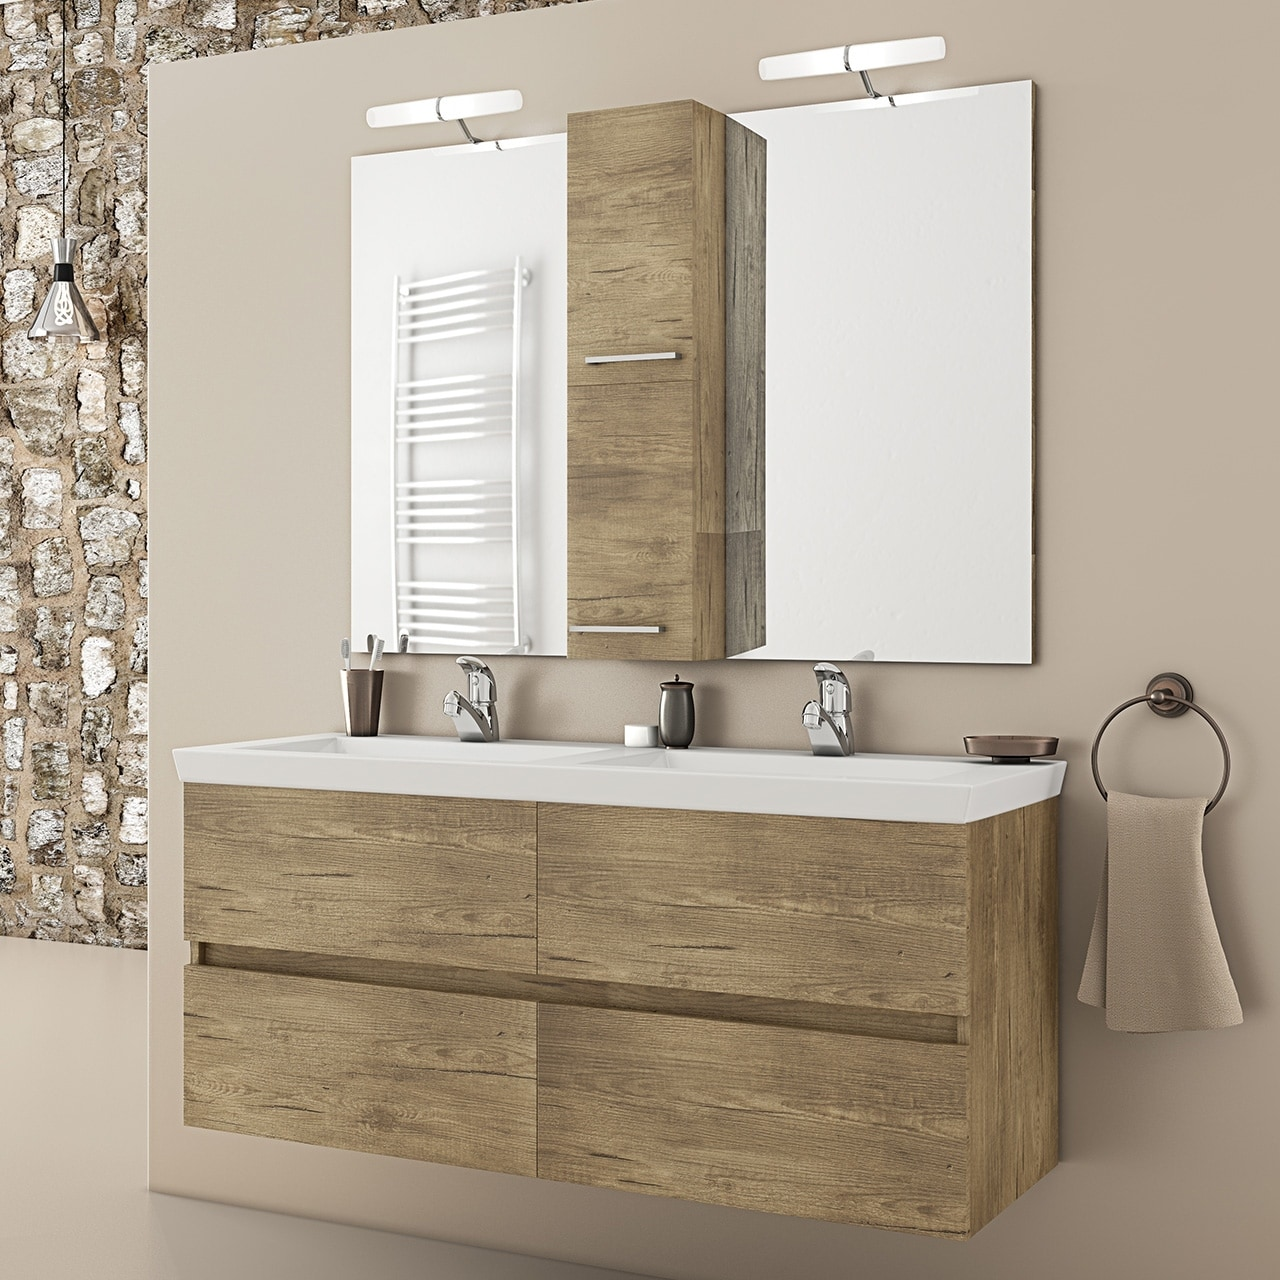 48 Natural Double Floating Vanity With His And Her Integrated Porcelain Sinks Overstock 32167337